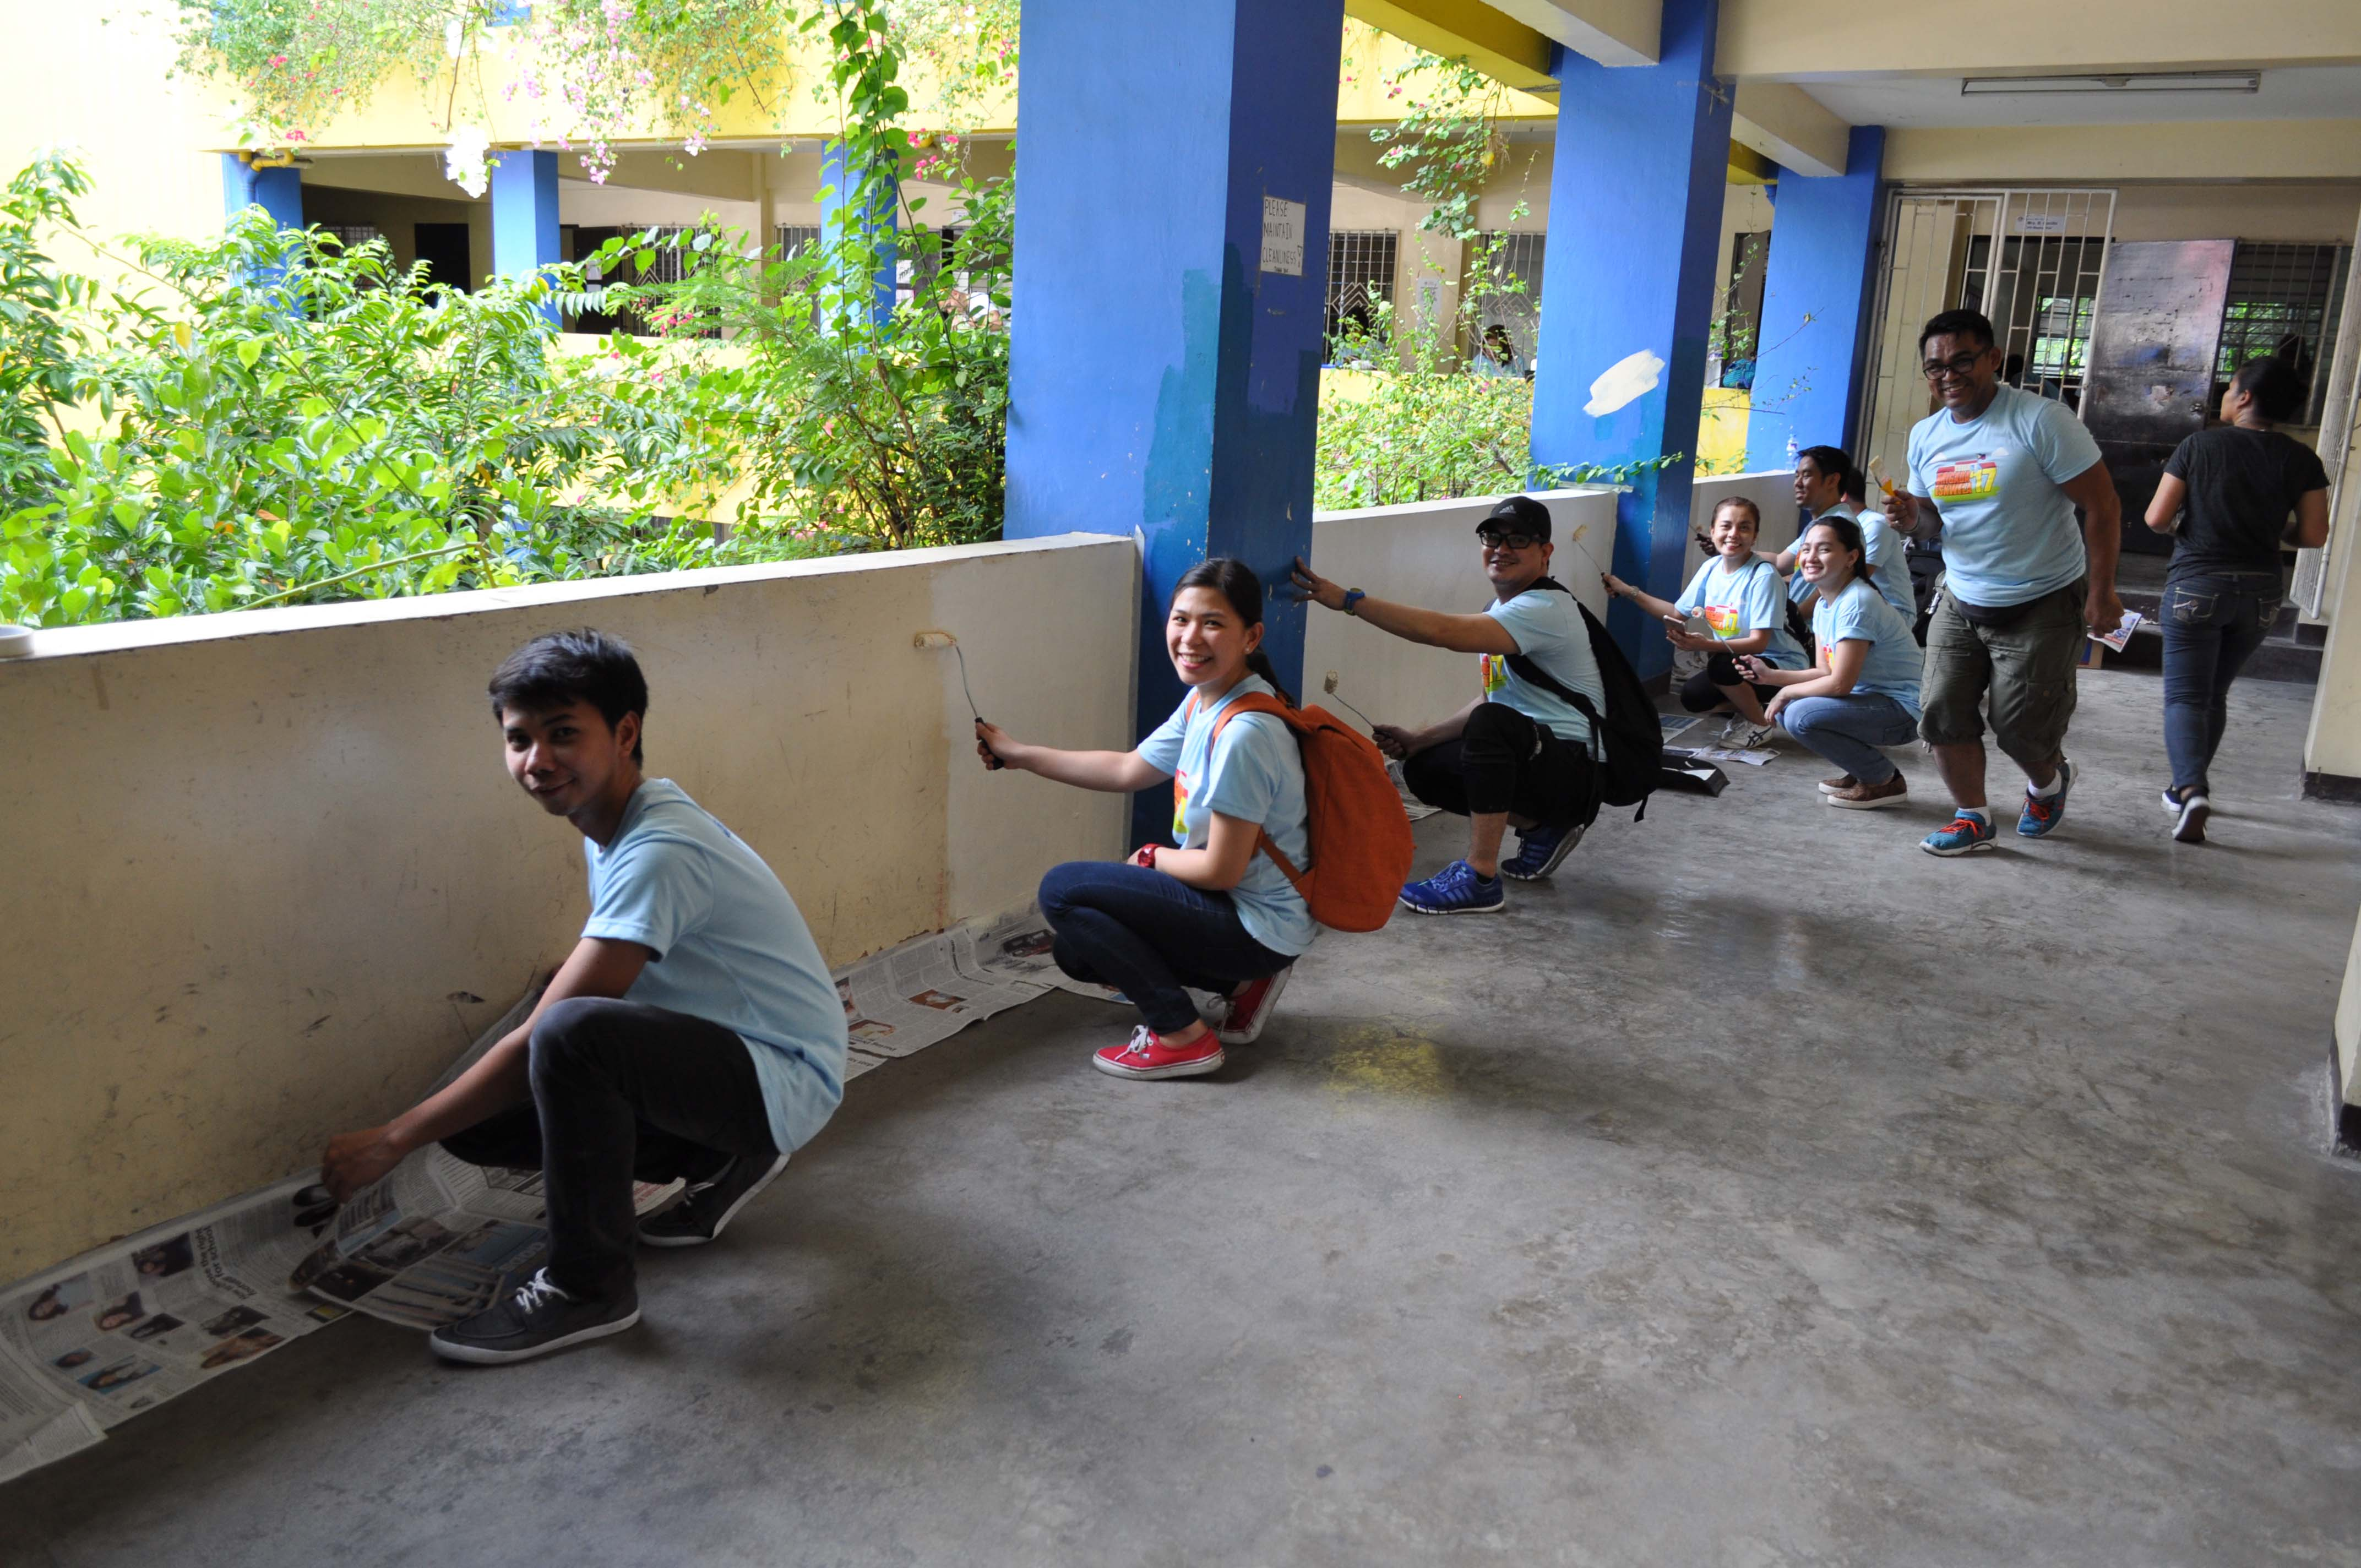 Volunteers work together to clean and beautify KHS for the new school year